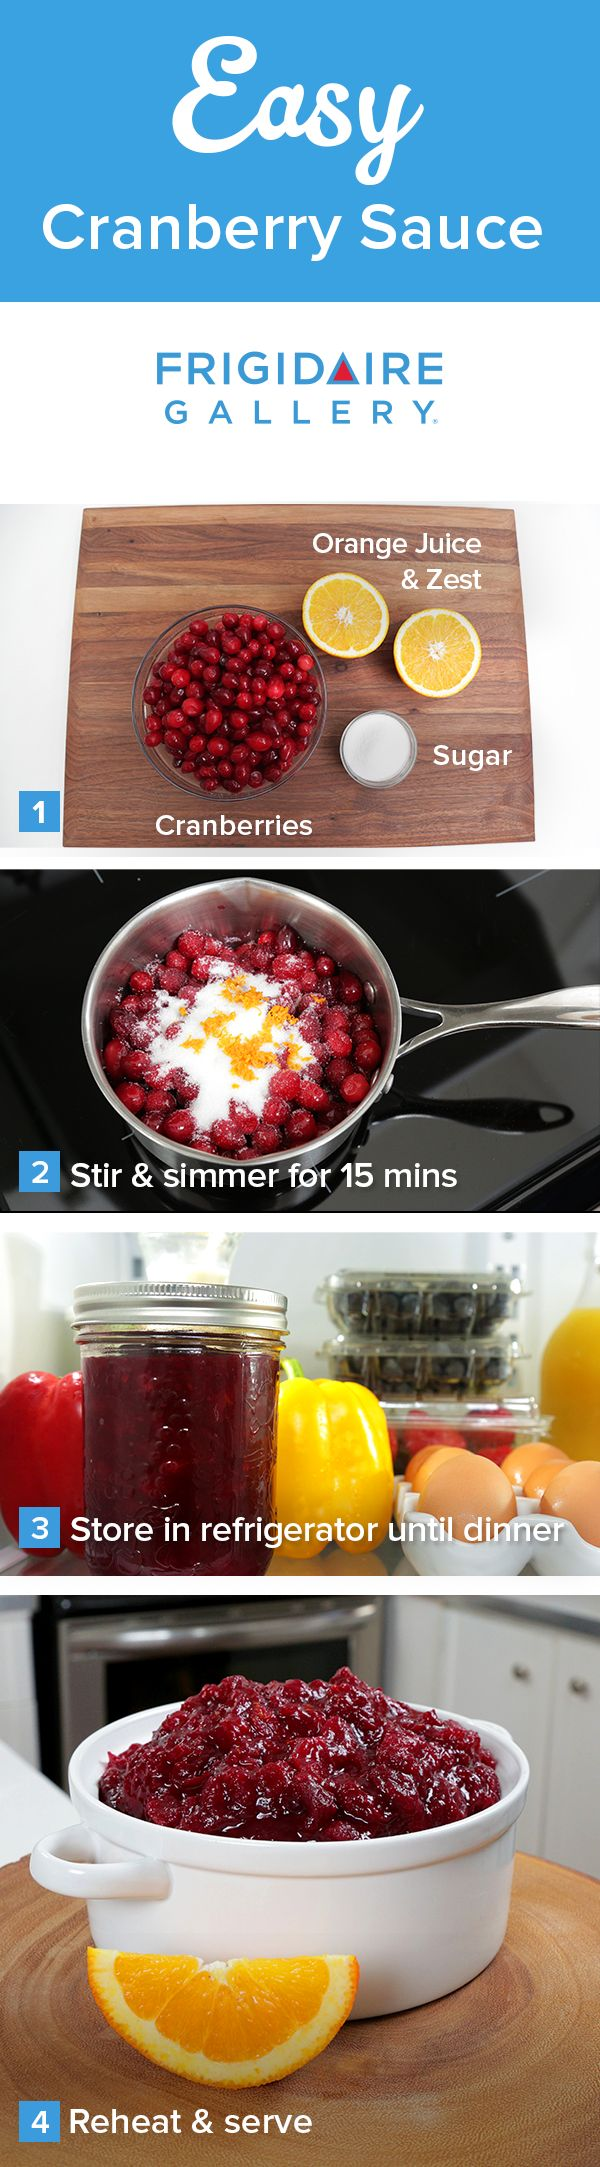 Homemade cranberry sauce can be easy! Check out @TheDomesticGeek's homemade cranberry sauce recipe with orange zest and sugar. Click for more great tips on how to save time this holiday season.